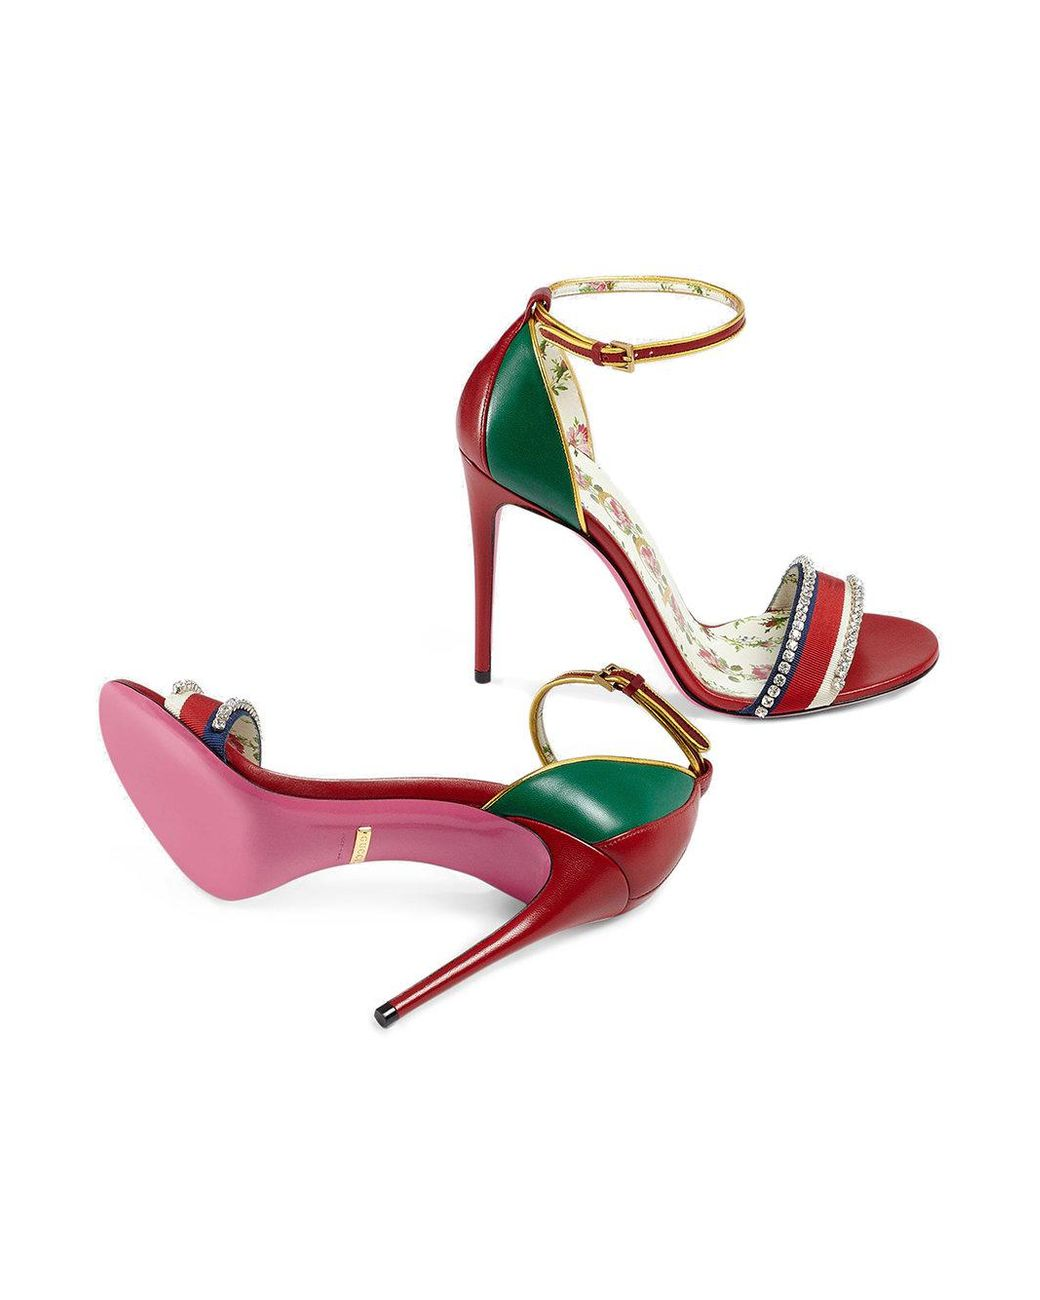 698a511933da Lyst - Gucci Leather Sandal With Crystals in Red - Save 43%